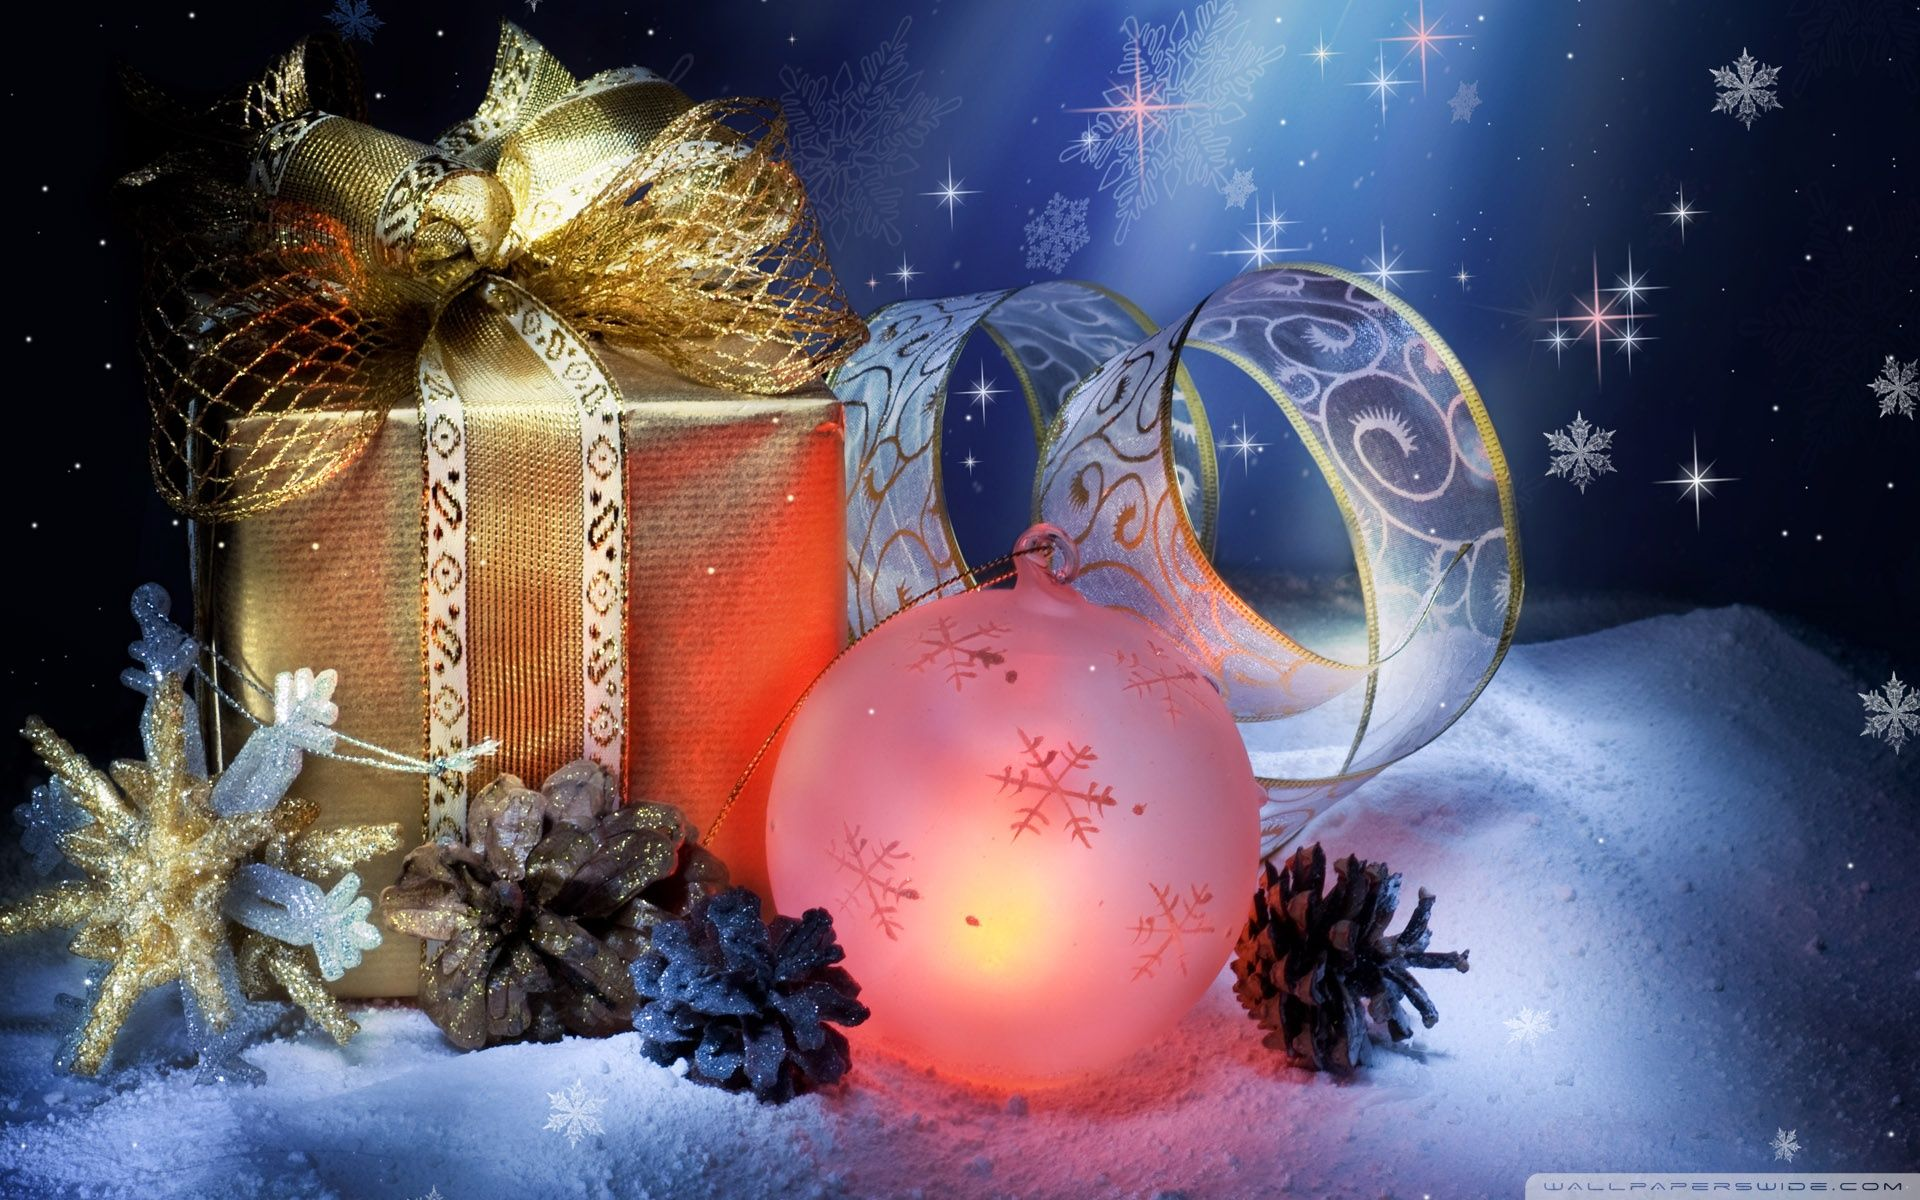 Free download high resolution christmas gift hd wallpaper for ipad free download high resolution christmas gift hd wallpaper for ipad iphone mobile device negle Gallery